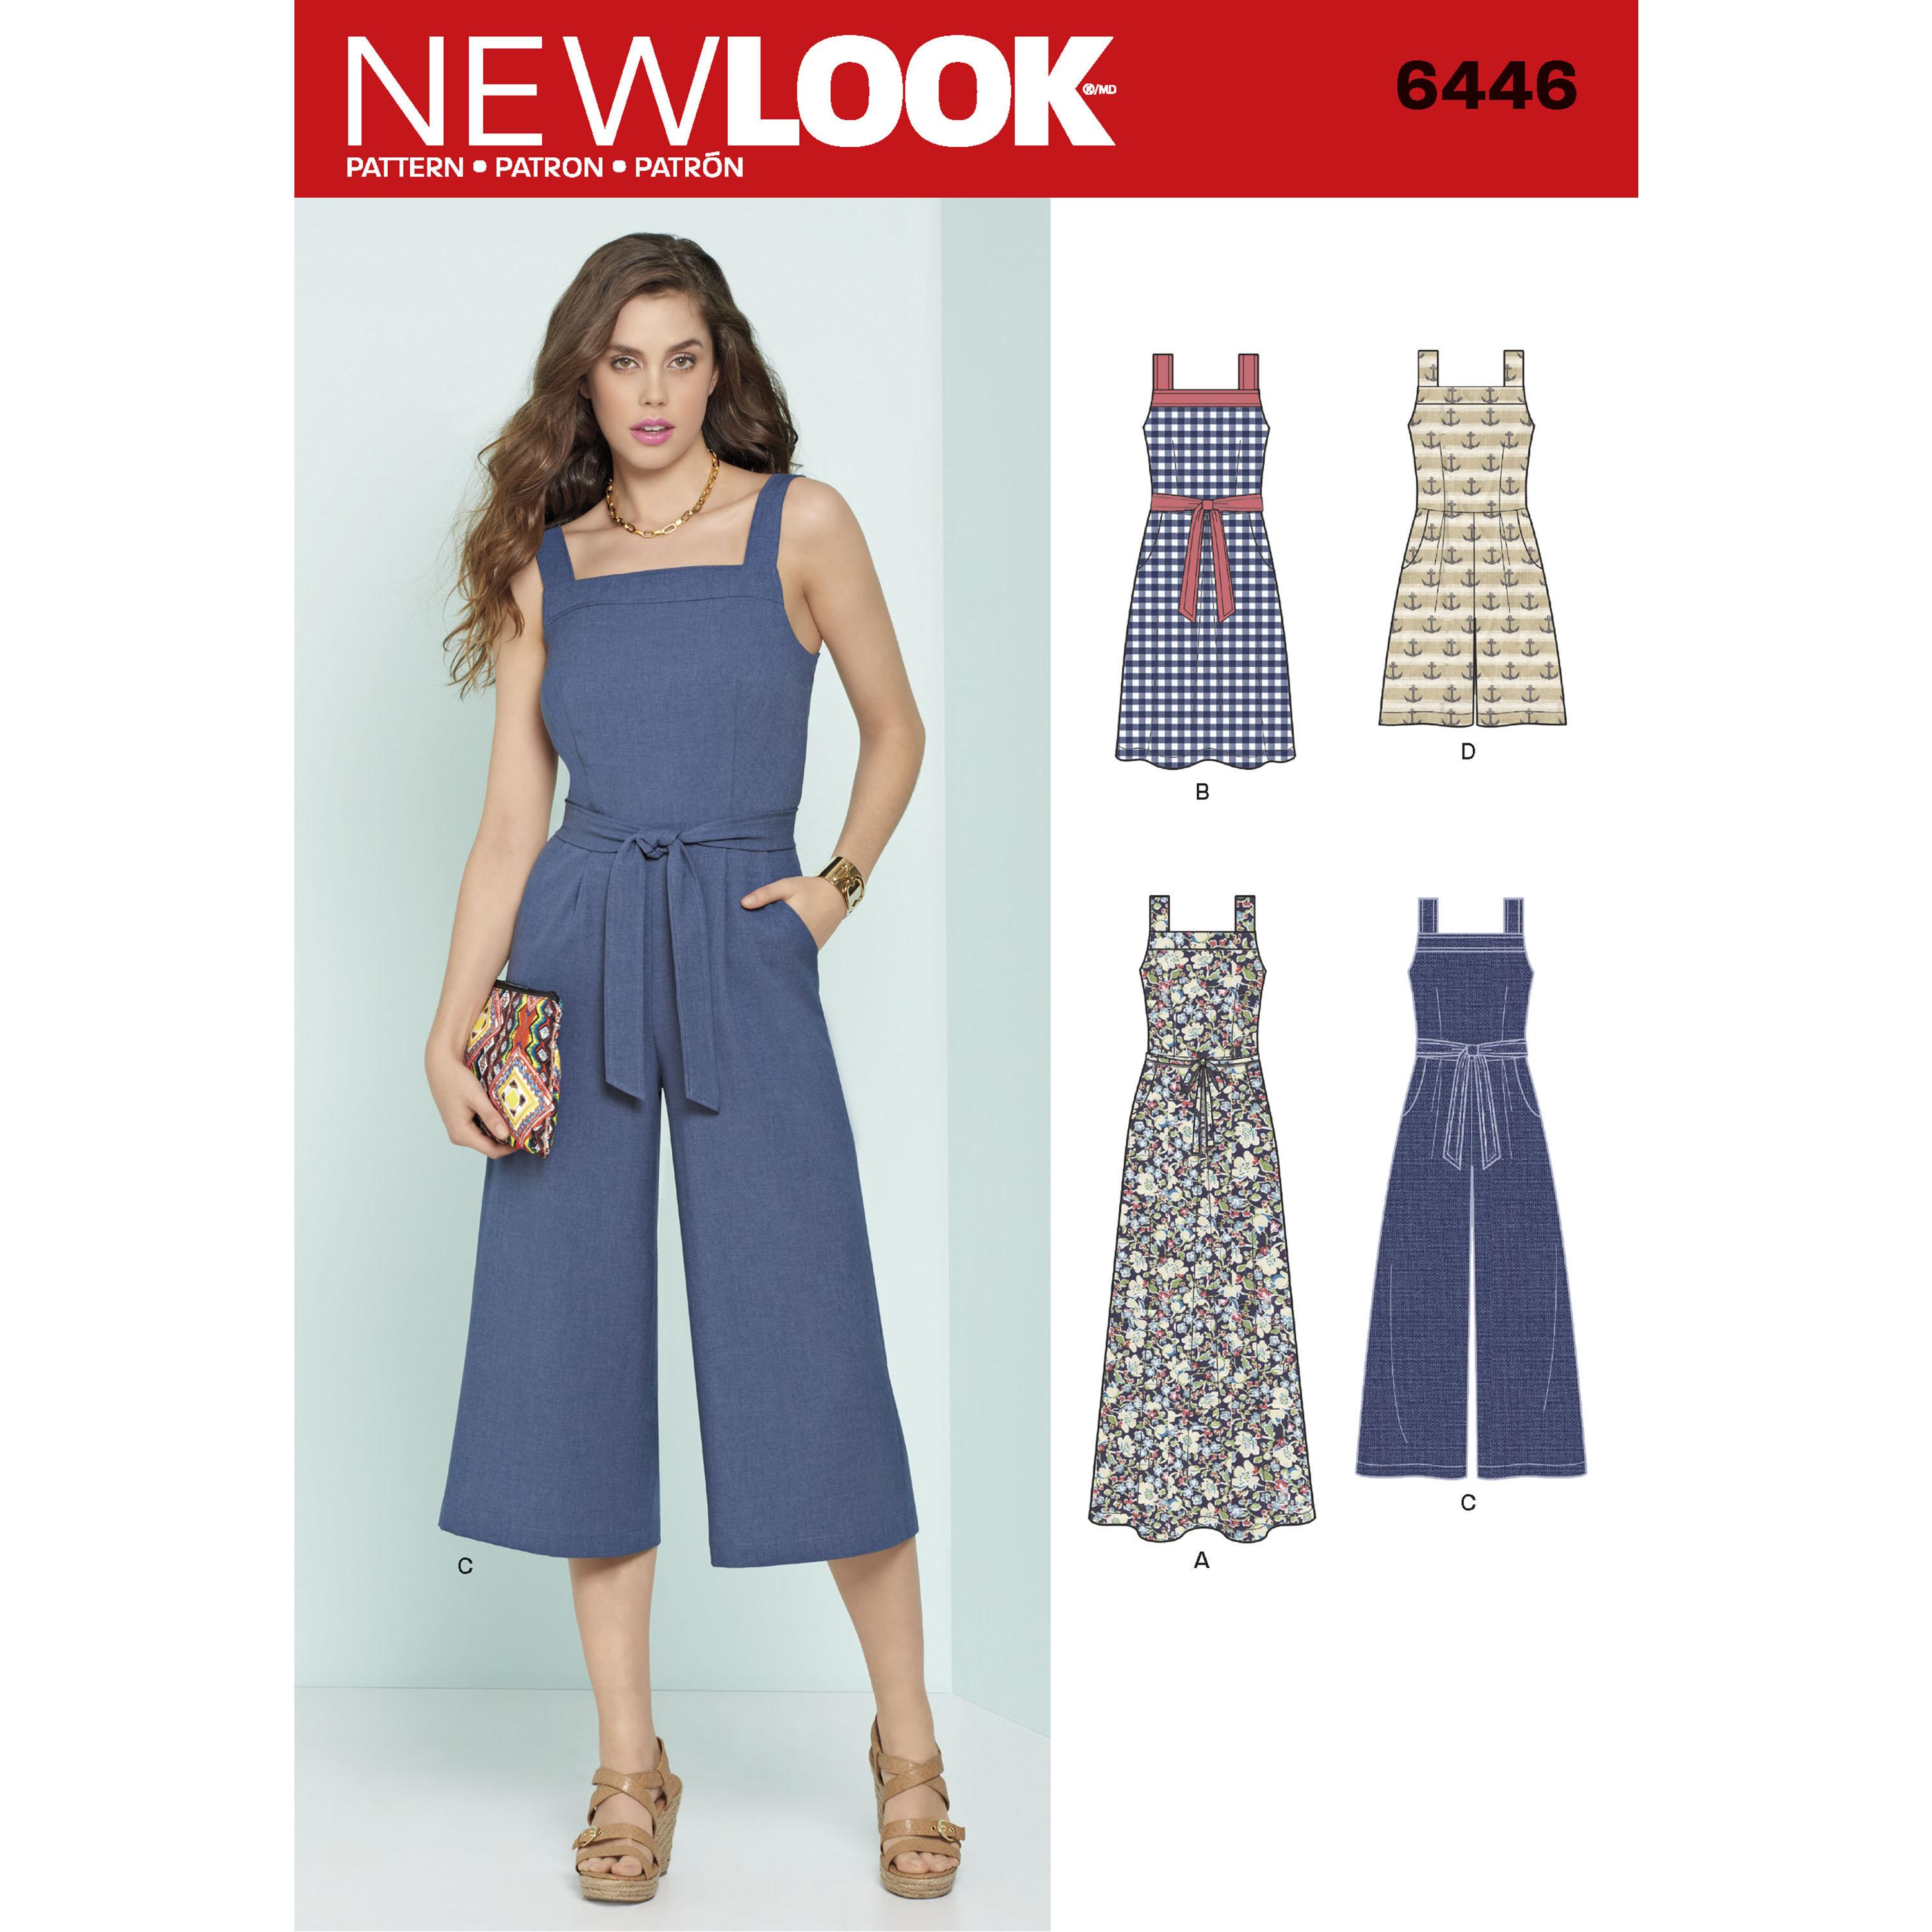 NewLook N6446 Misses' Jumpsuits and Dresses